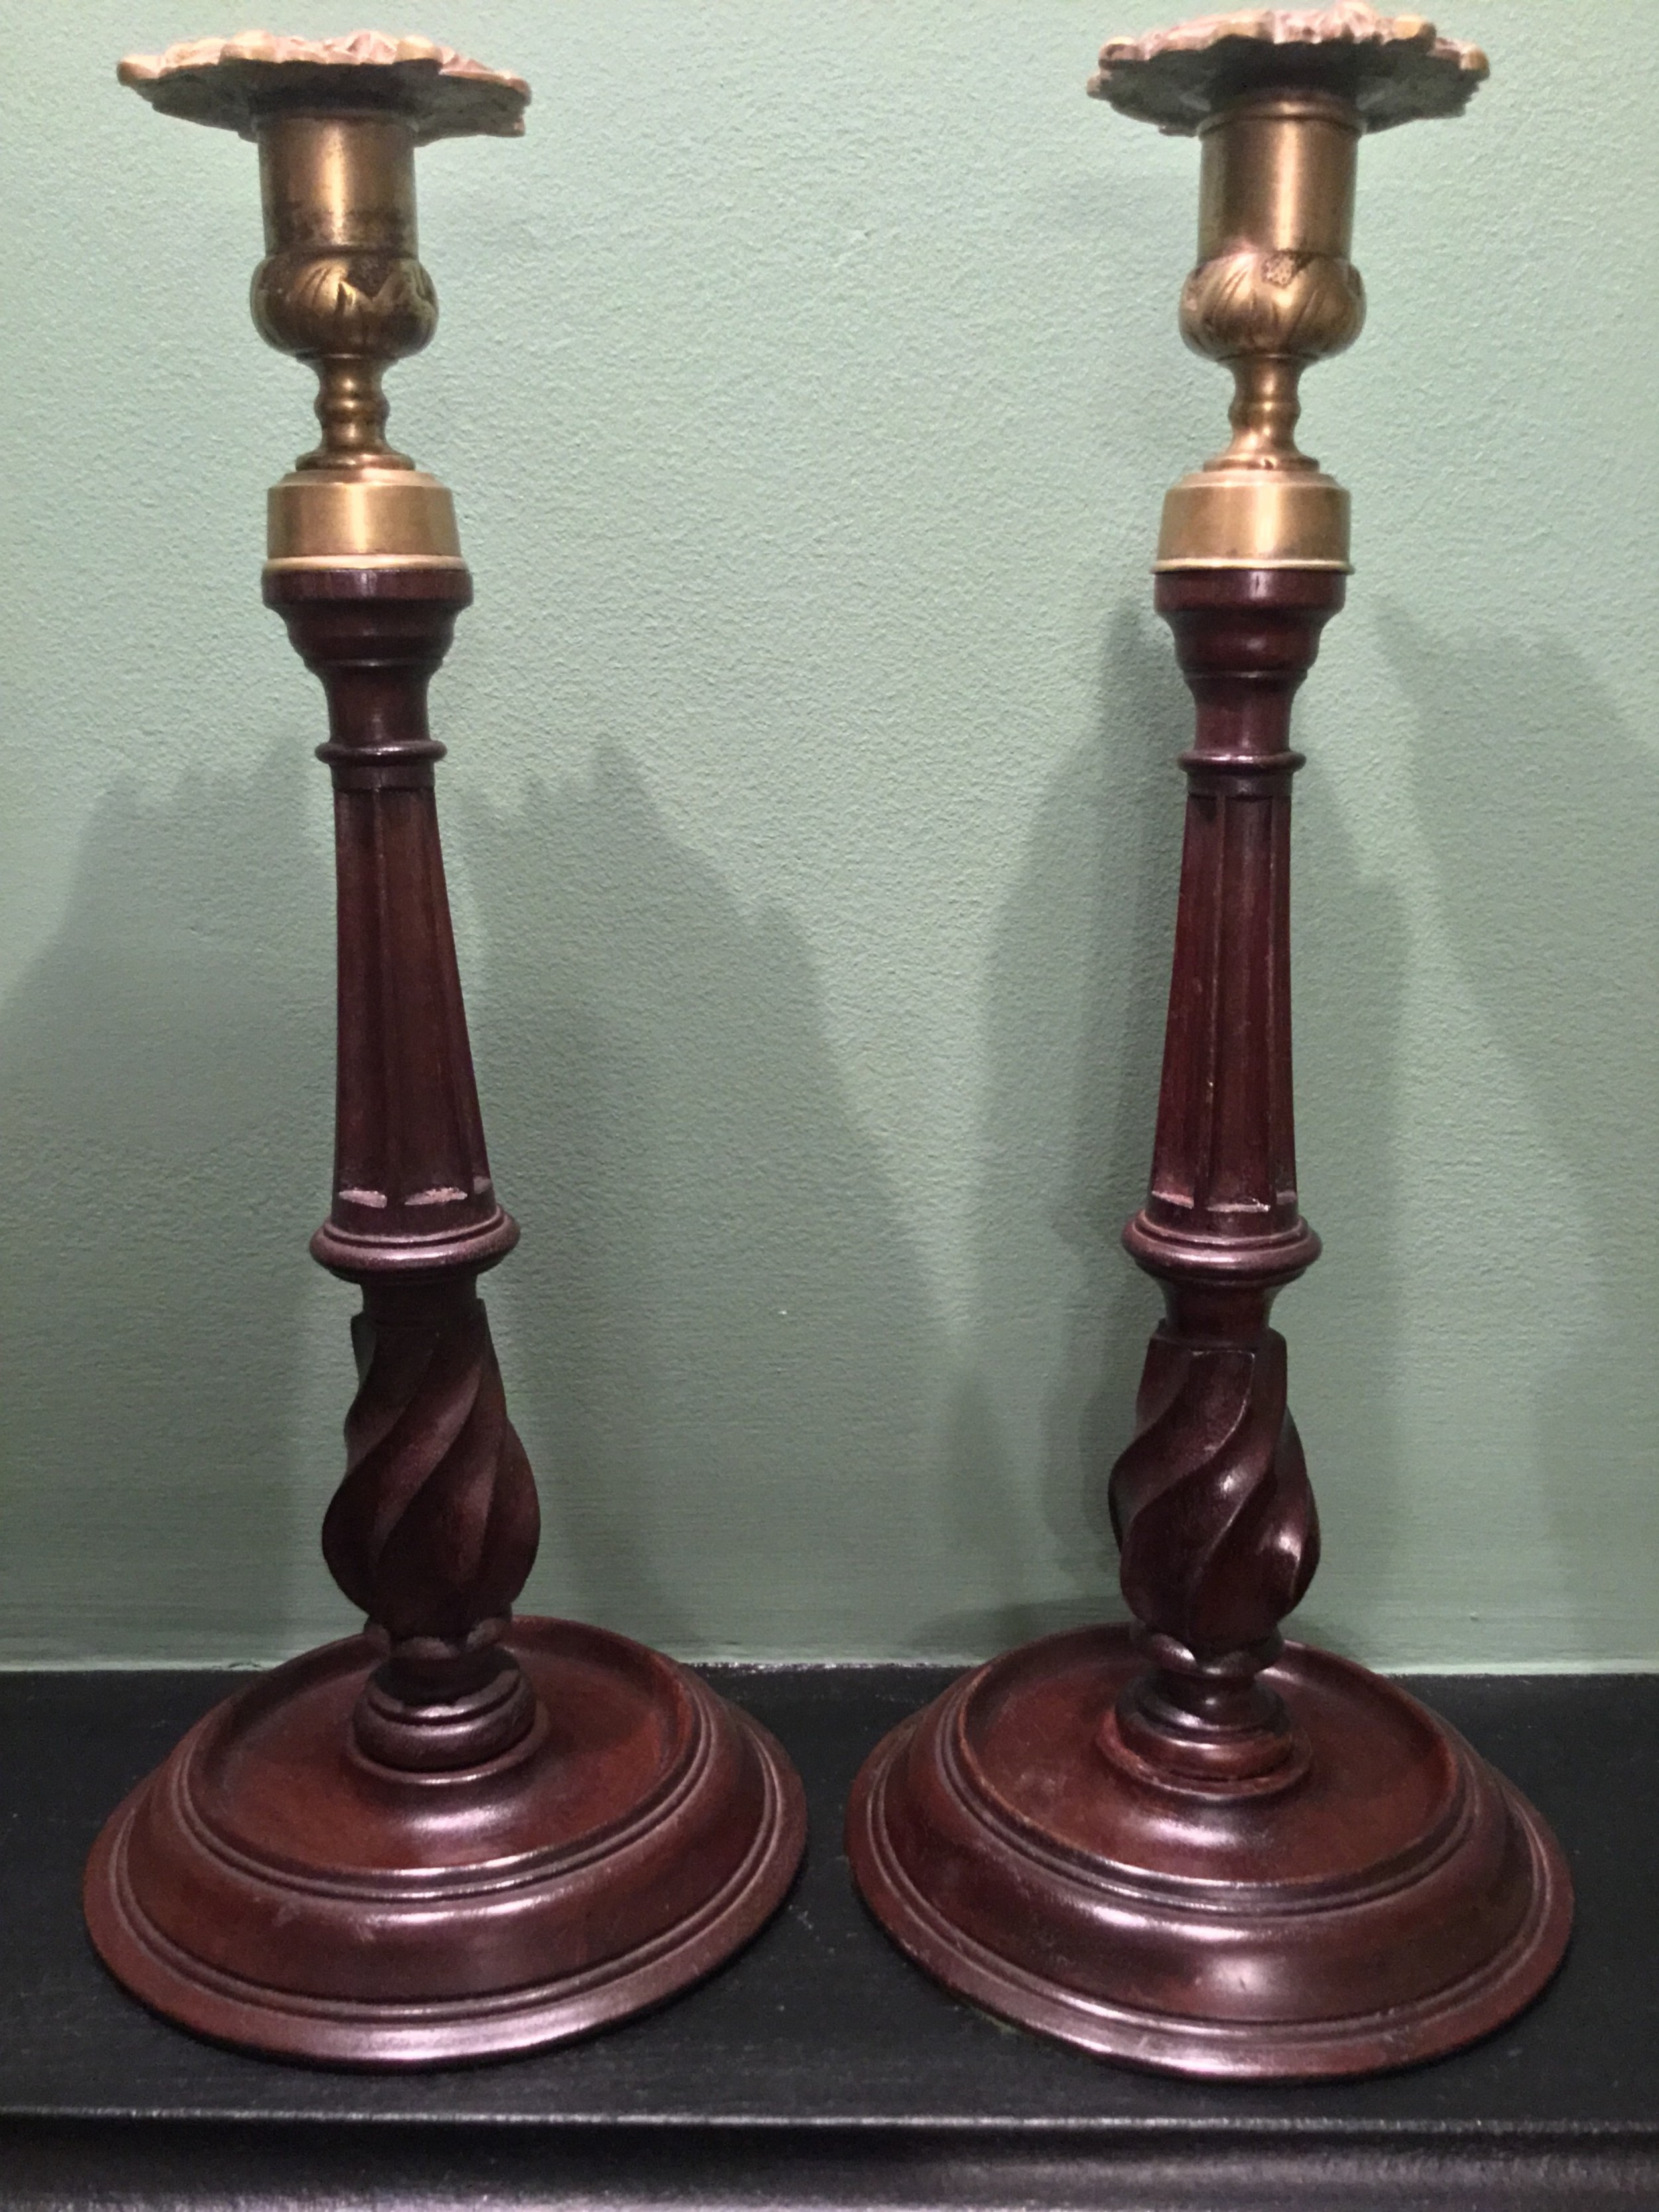 a pair of 19th century mahogany and brass candlesticks